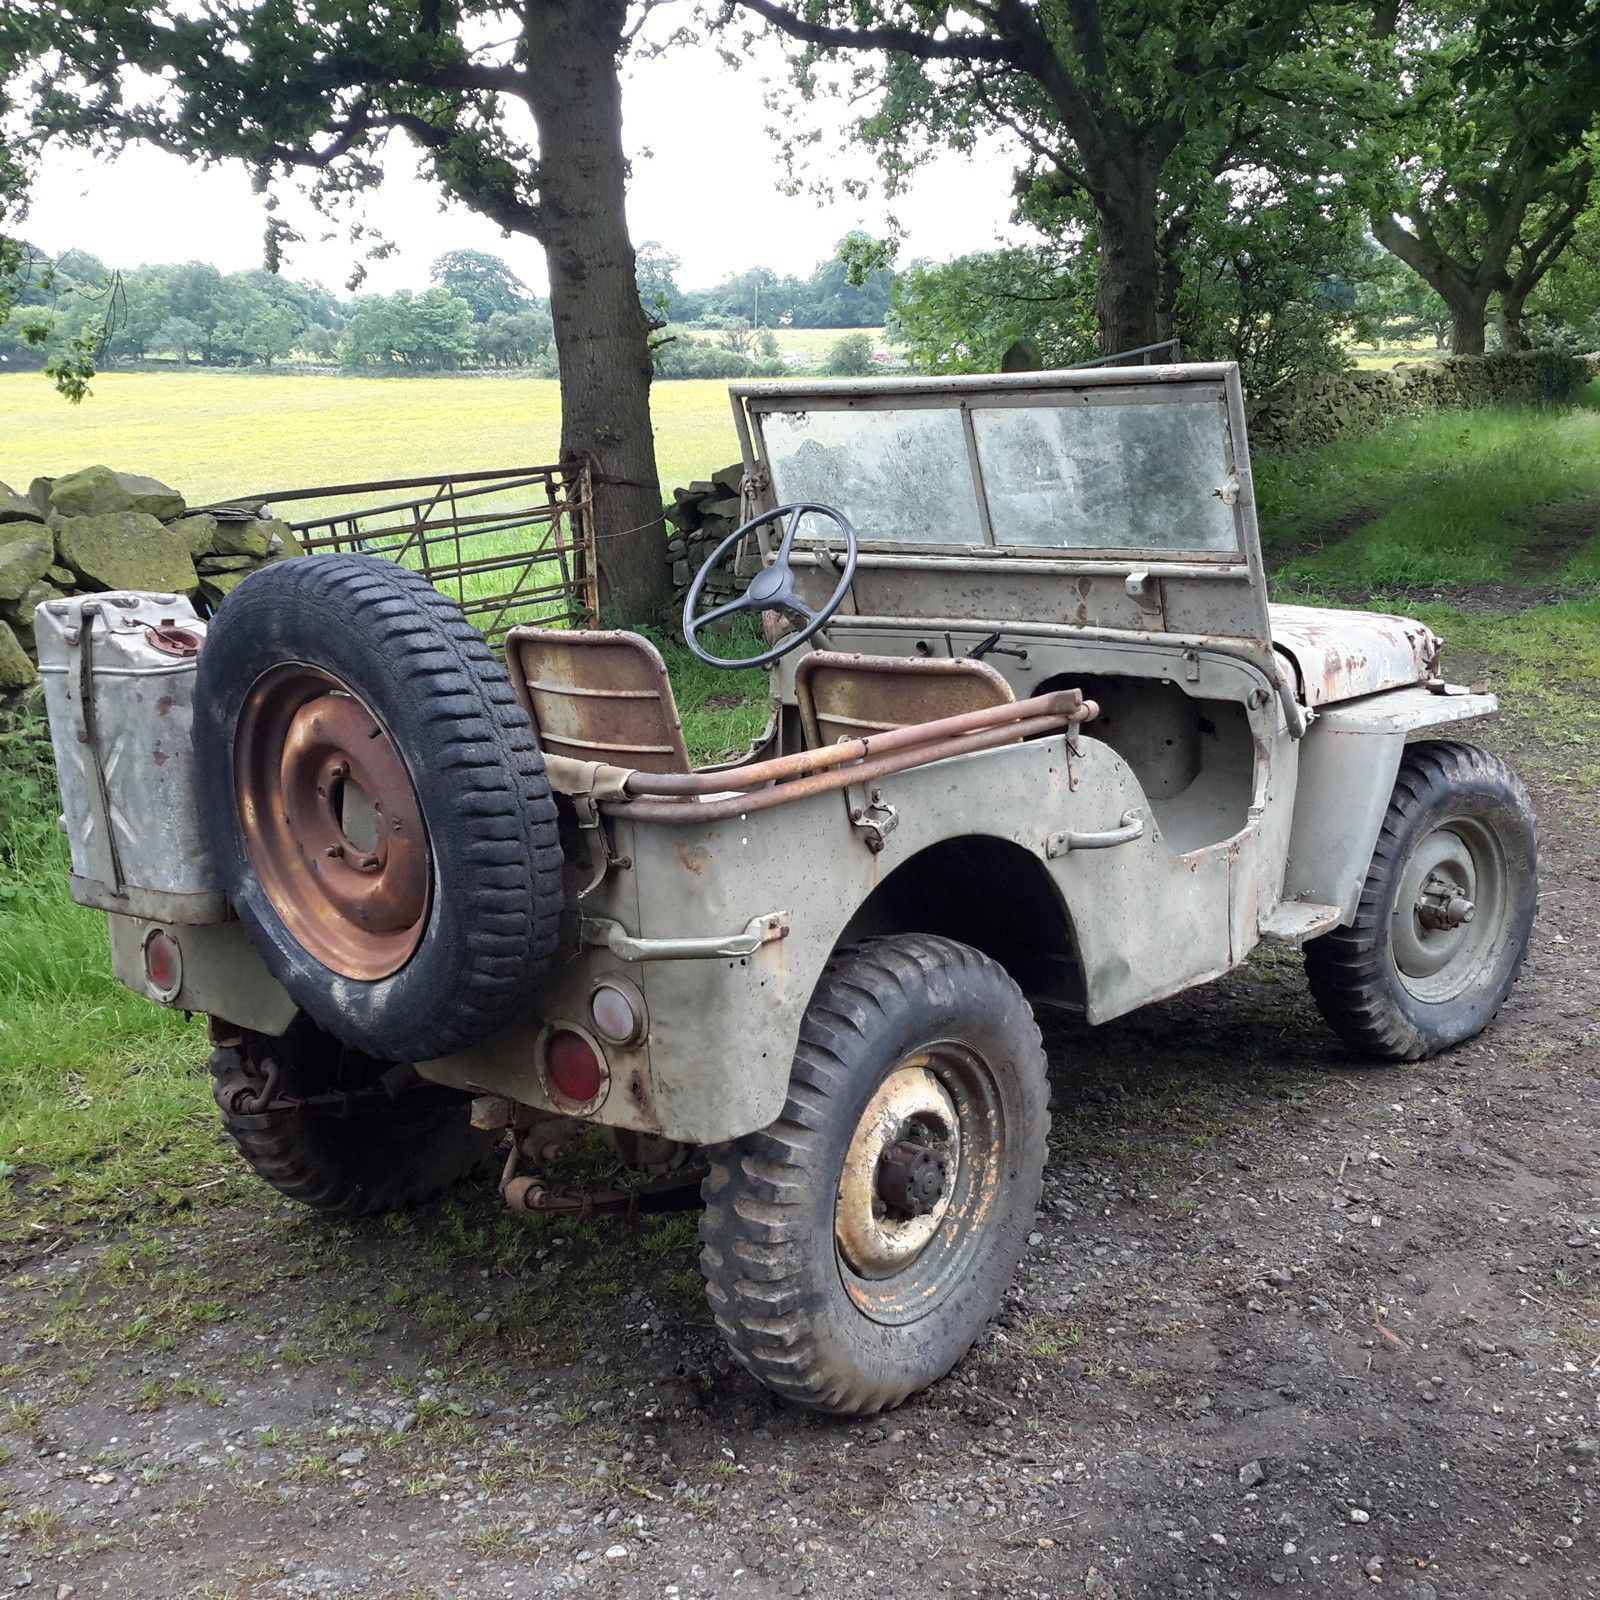 Willys jeep 1942 ford GPW ww2 jeep classic car barn find | eBay Jeep Dodge,